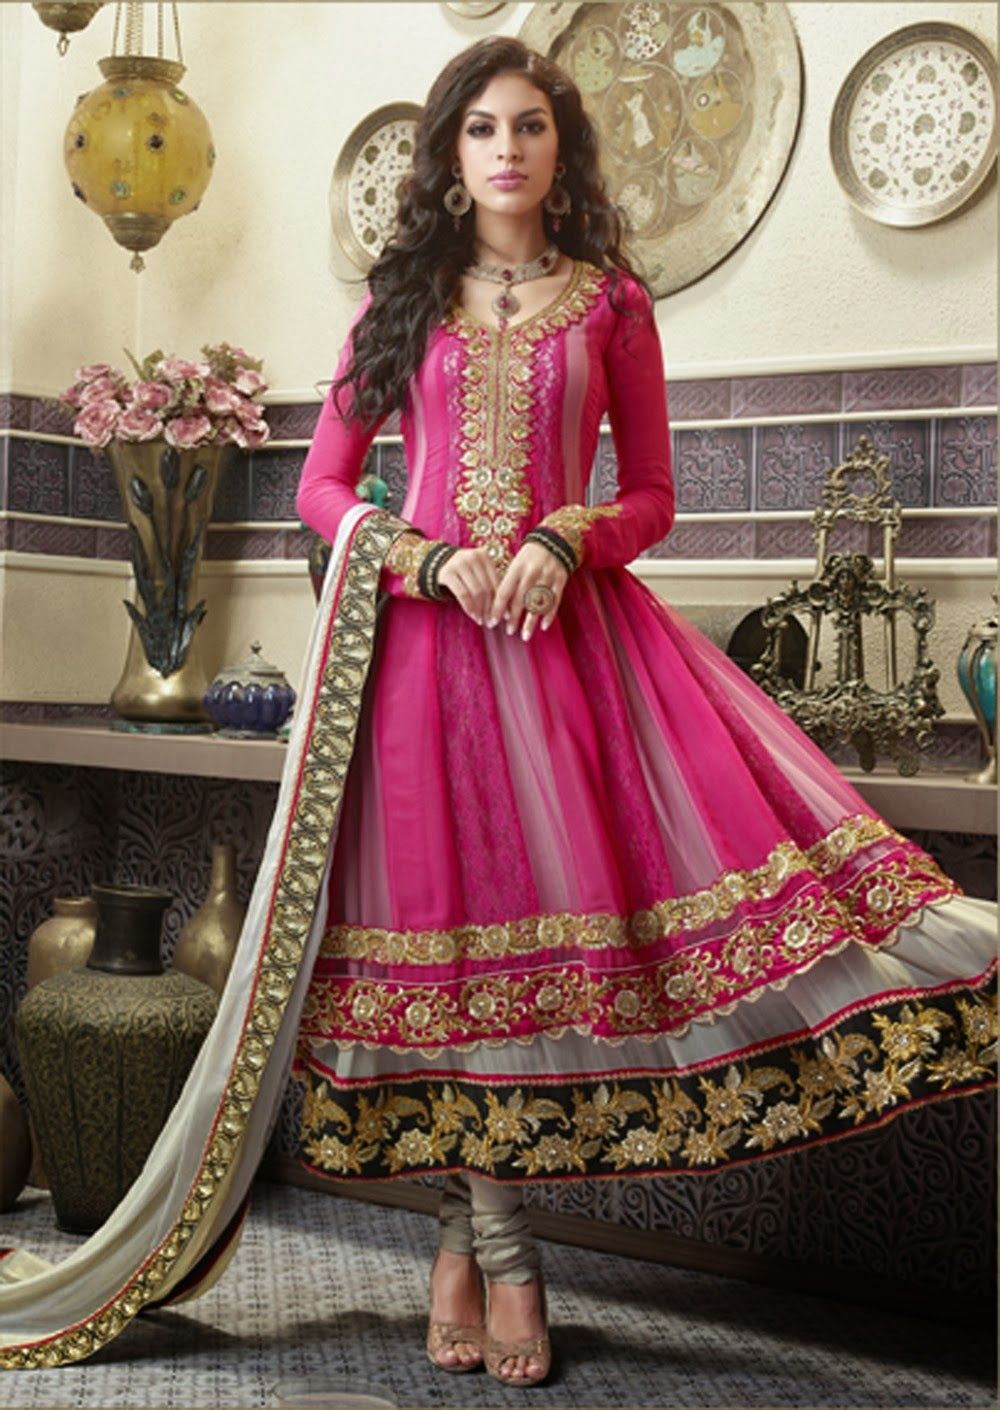 indian wedding dresses Google Search Indian dresses